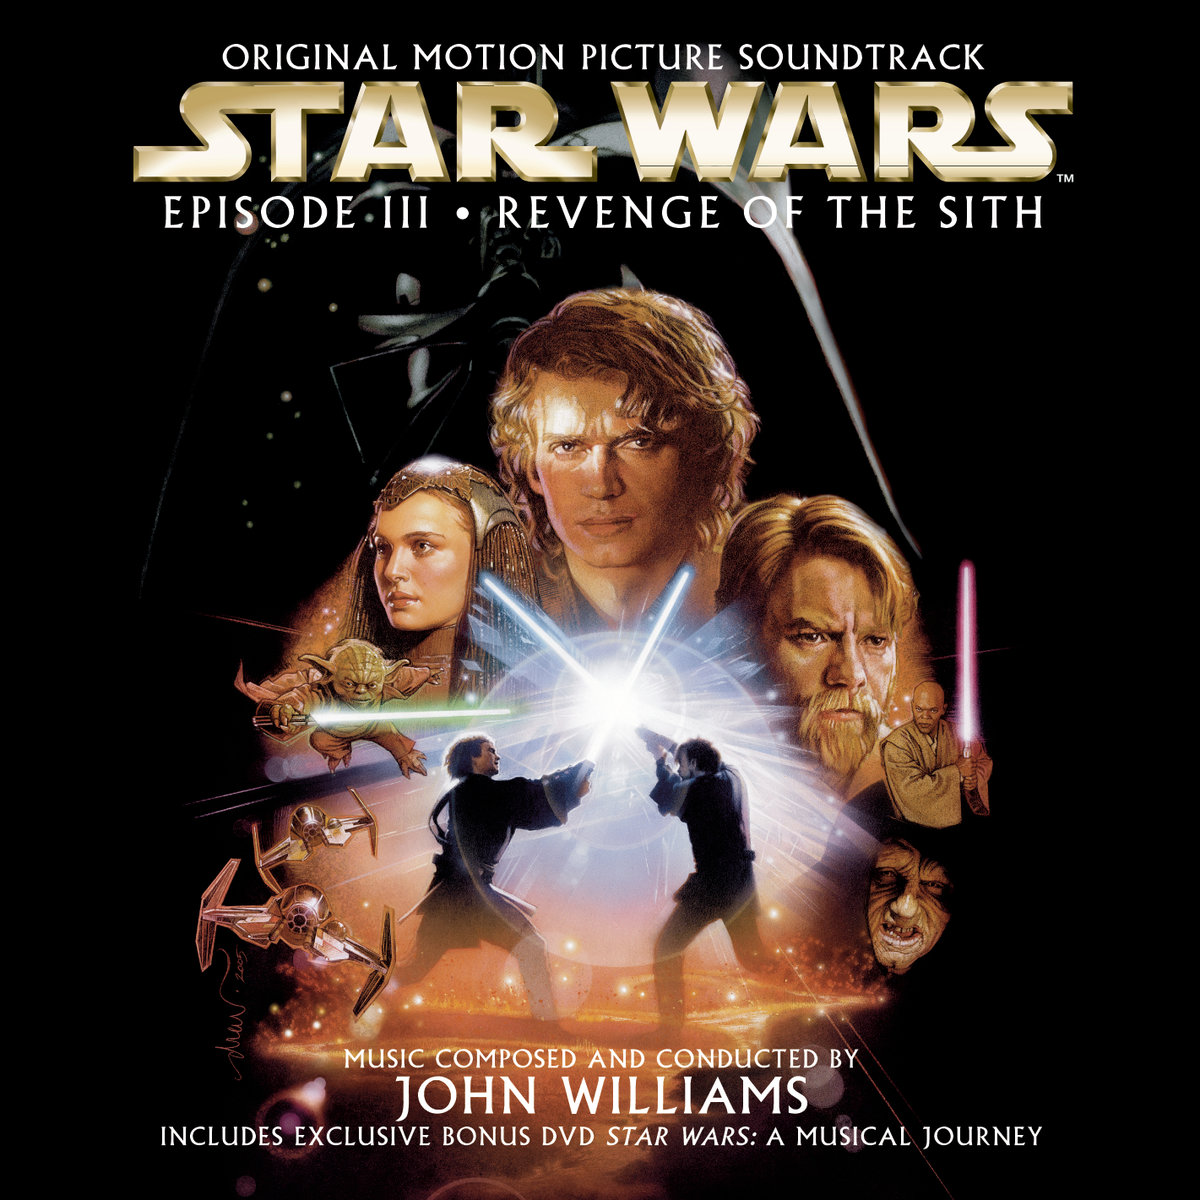 Star Wars Episode III: Revenge of the Sith Original Motion Picture Soundtrack										Звездные войны: Эпизод 3 - Месть Ситхов 								Popuplar